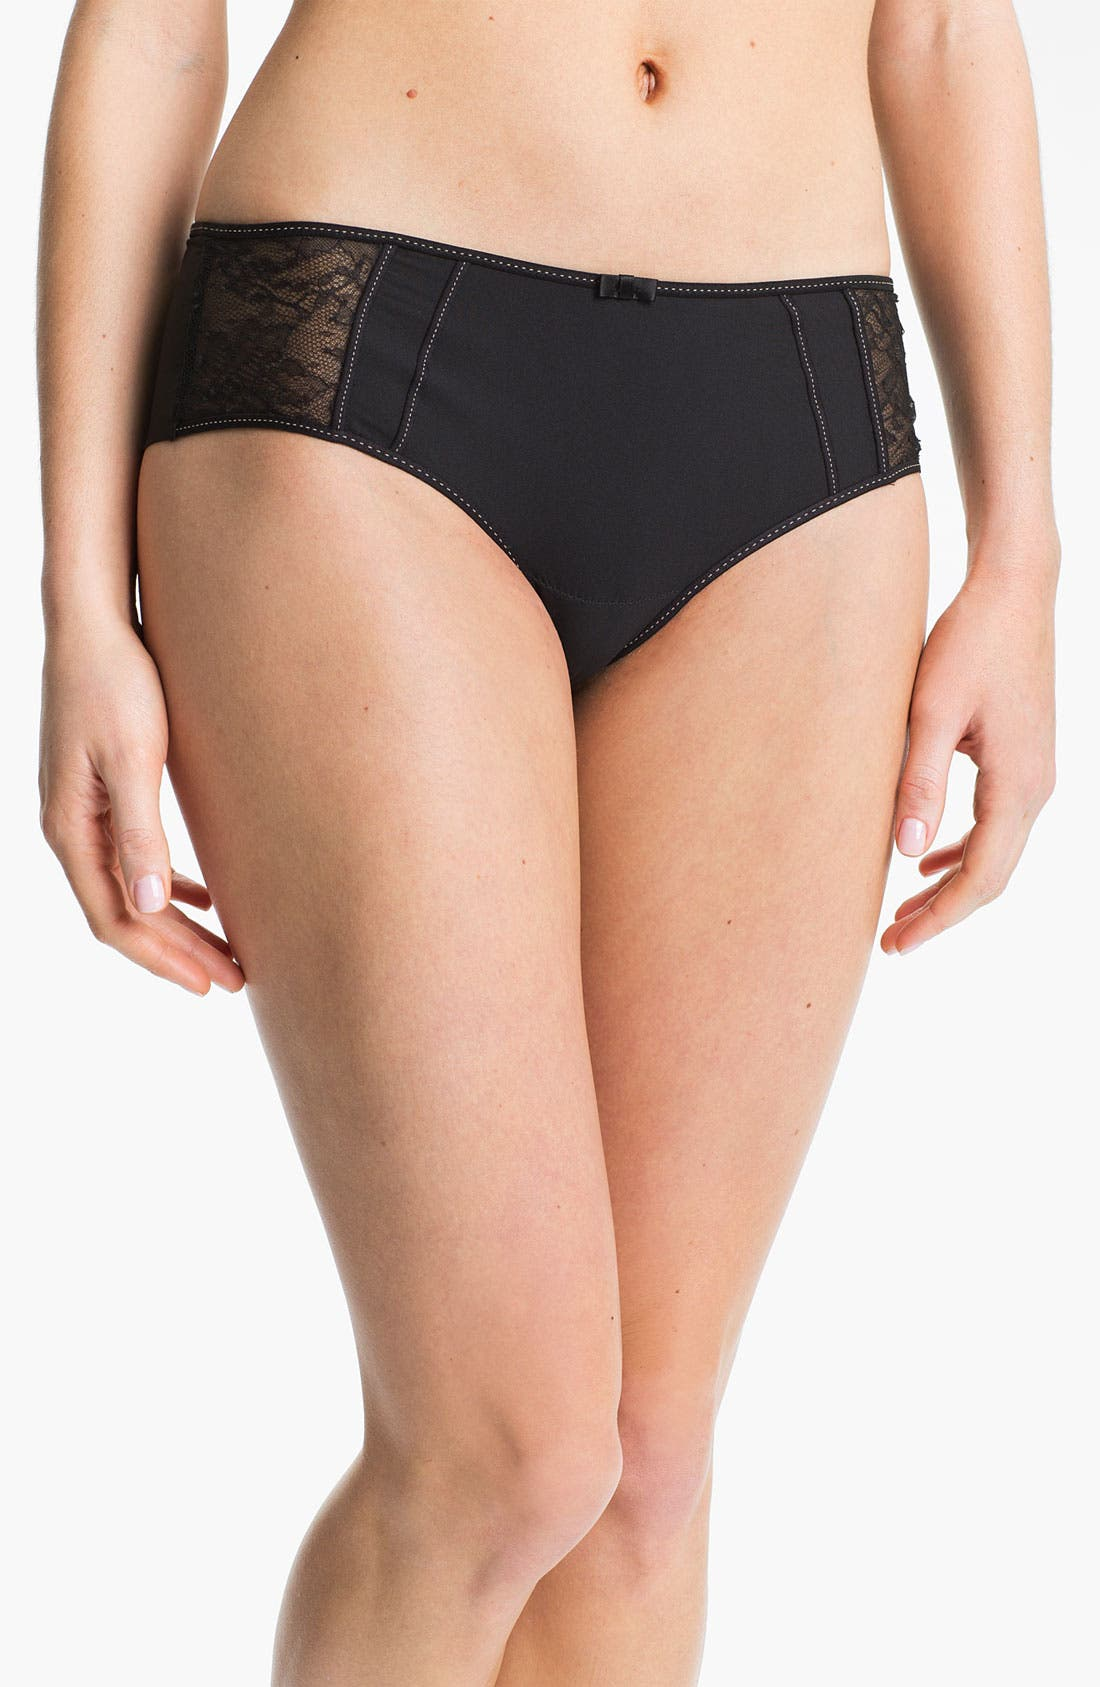 Alternate Image 1 Selected - Chantelle Intimates 'Orsay' Shorty